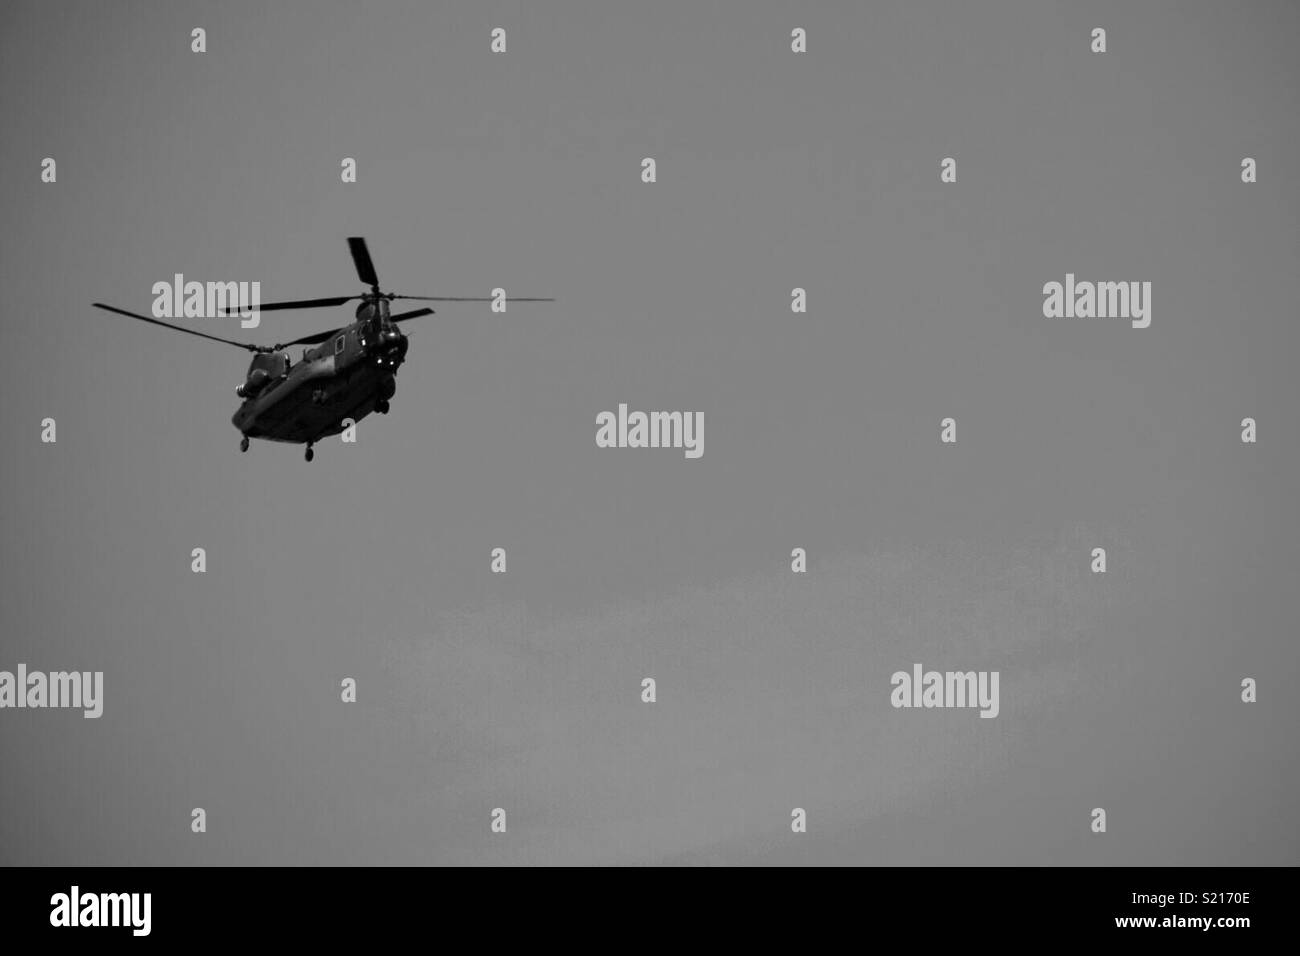 Army Helicopter flying over Gloucestershire - Stock Image